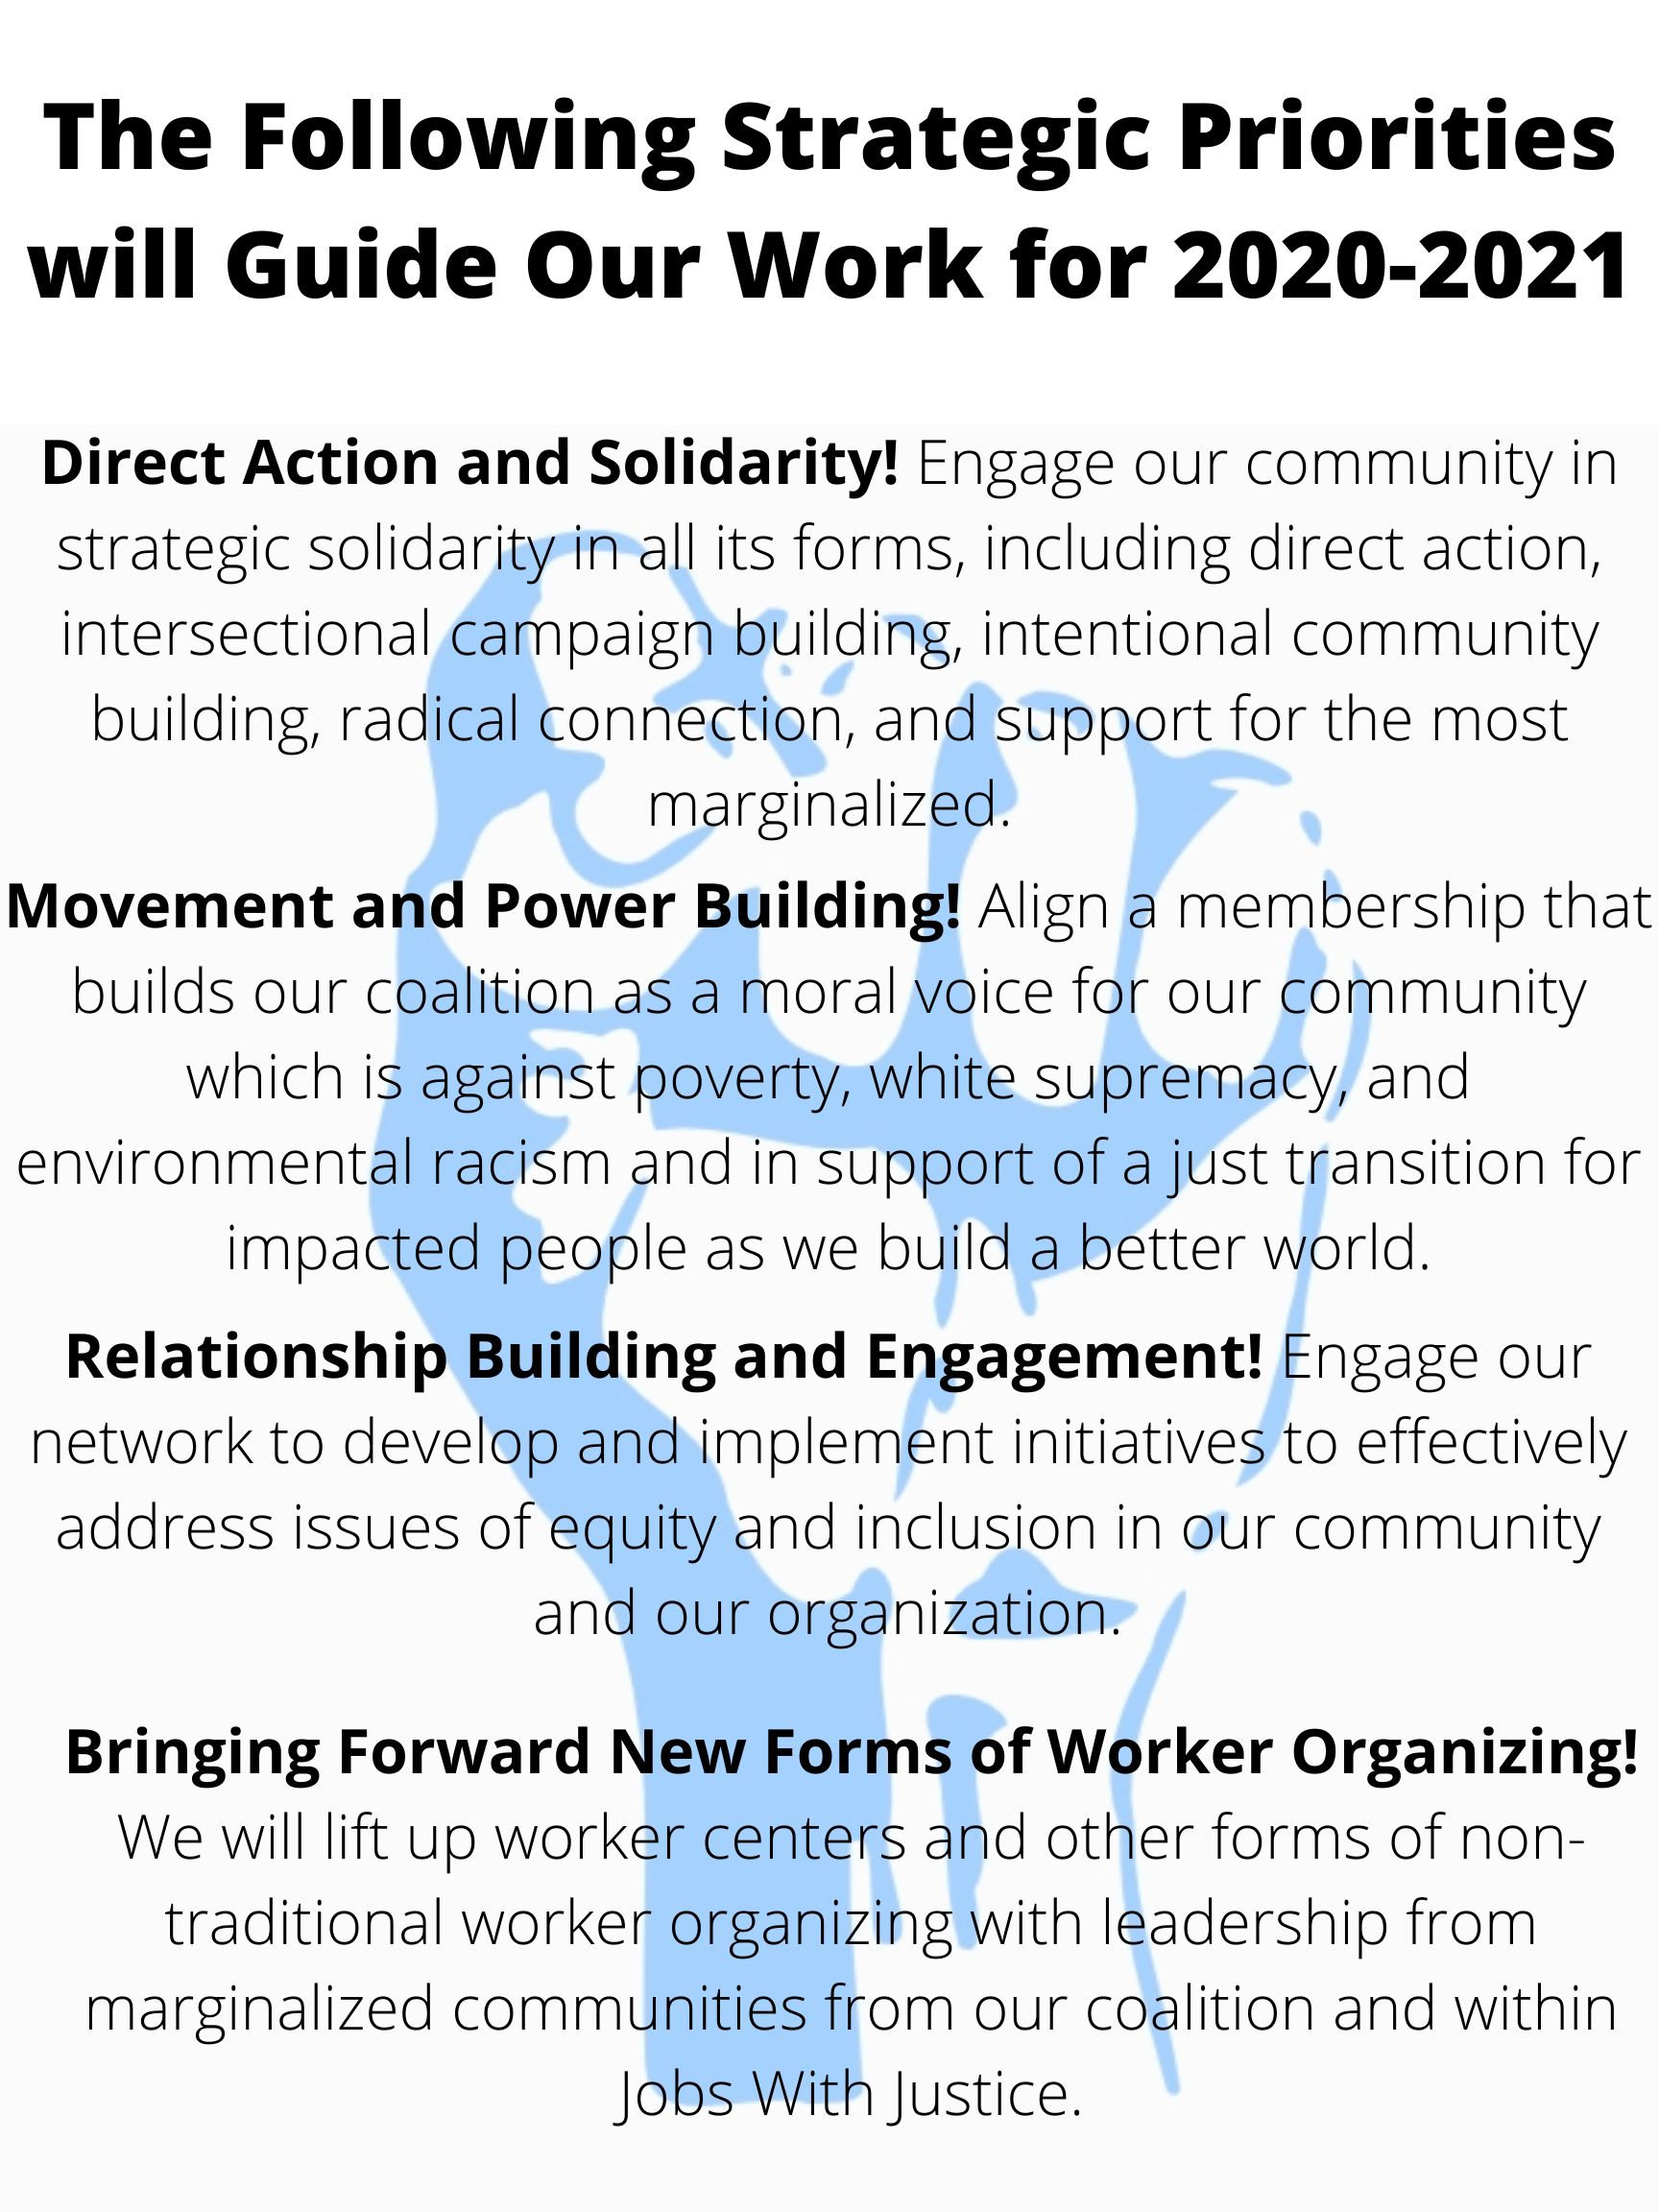 The Following Strategic Priorities will Guide Our Work for 2020-2021